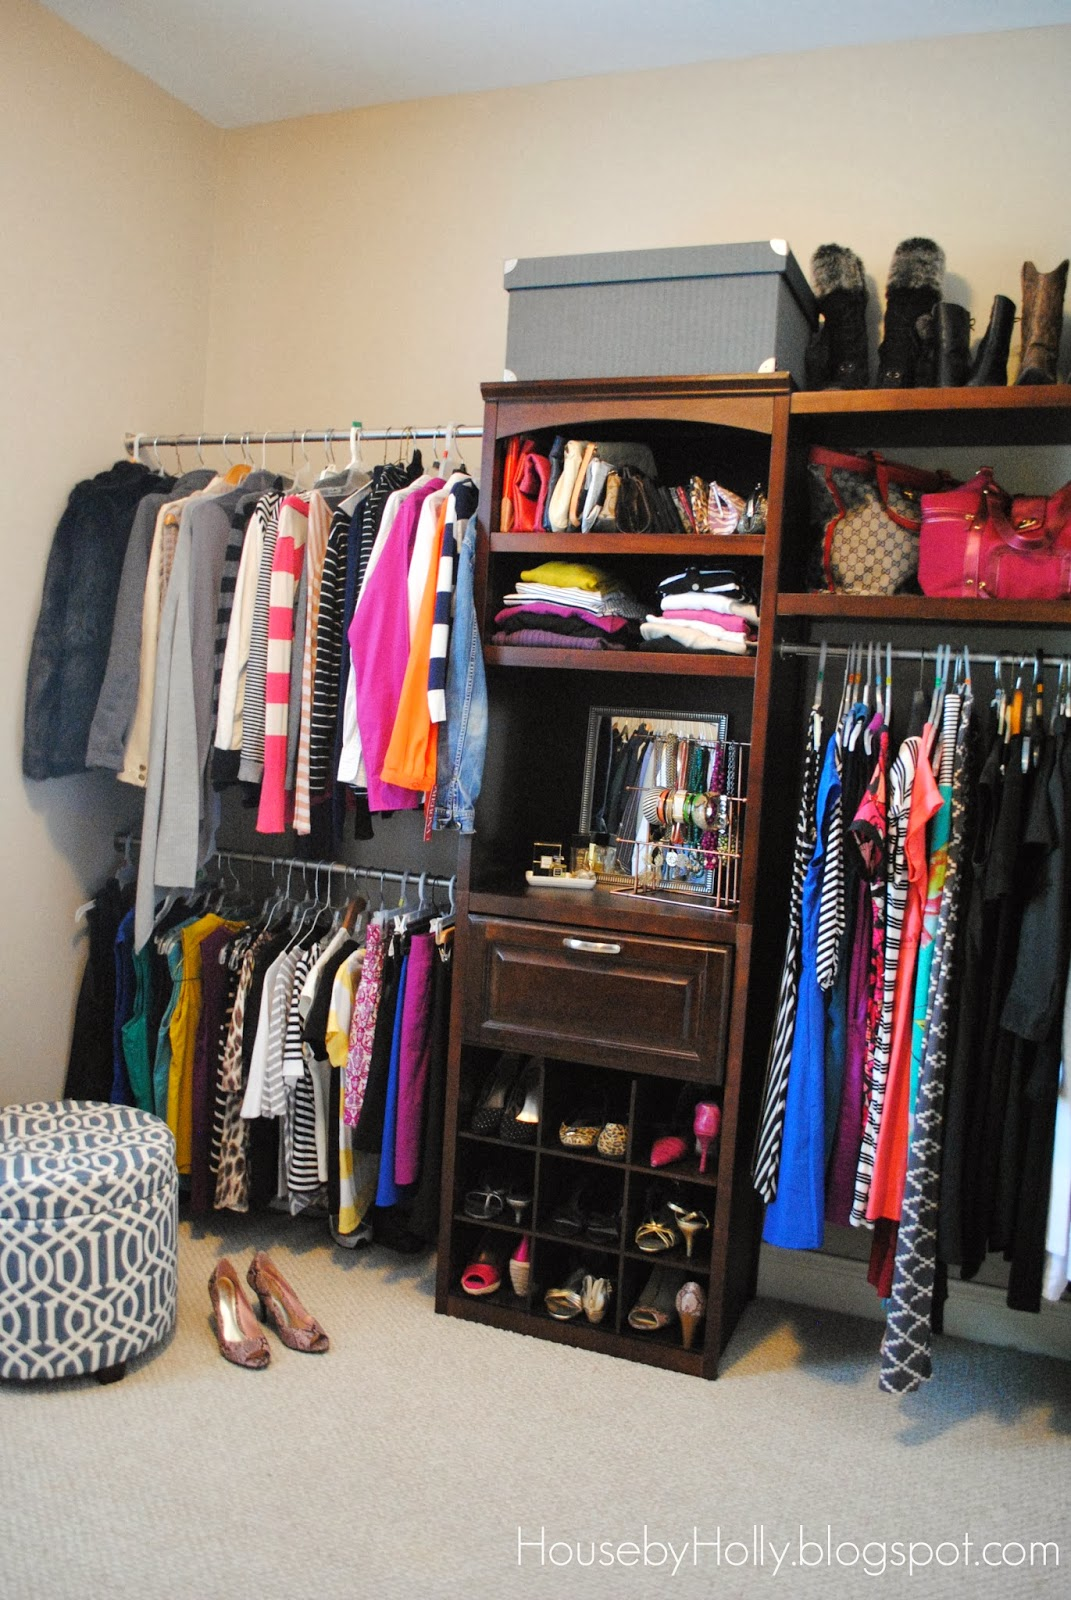 You Can Purchase The Closet System Like This One, Or You Can Buy Individual  Pieces And Build Your Own. We Bought The Complete System And Then Added On  A Few ...